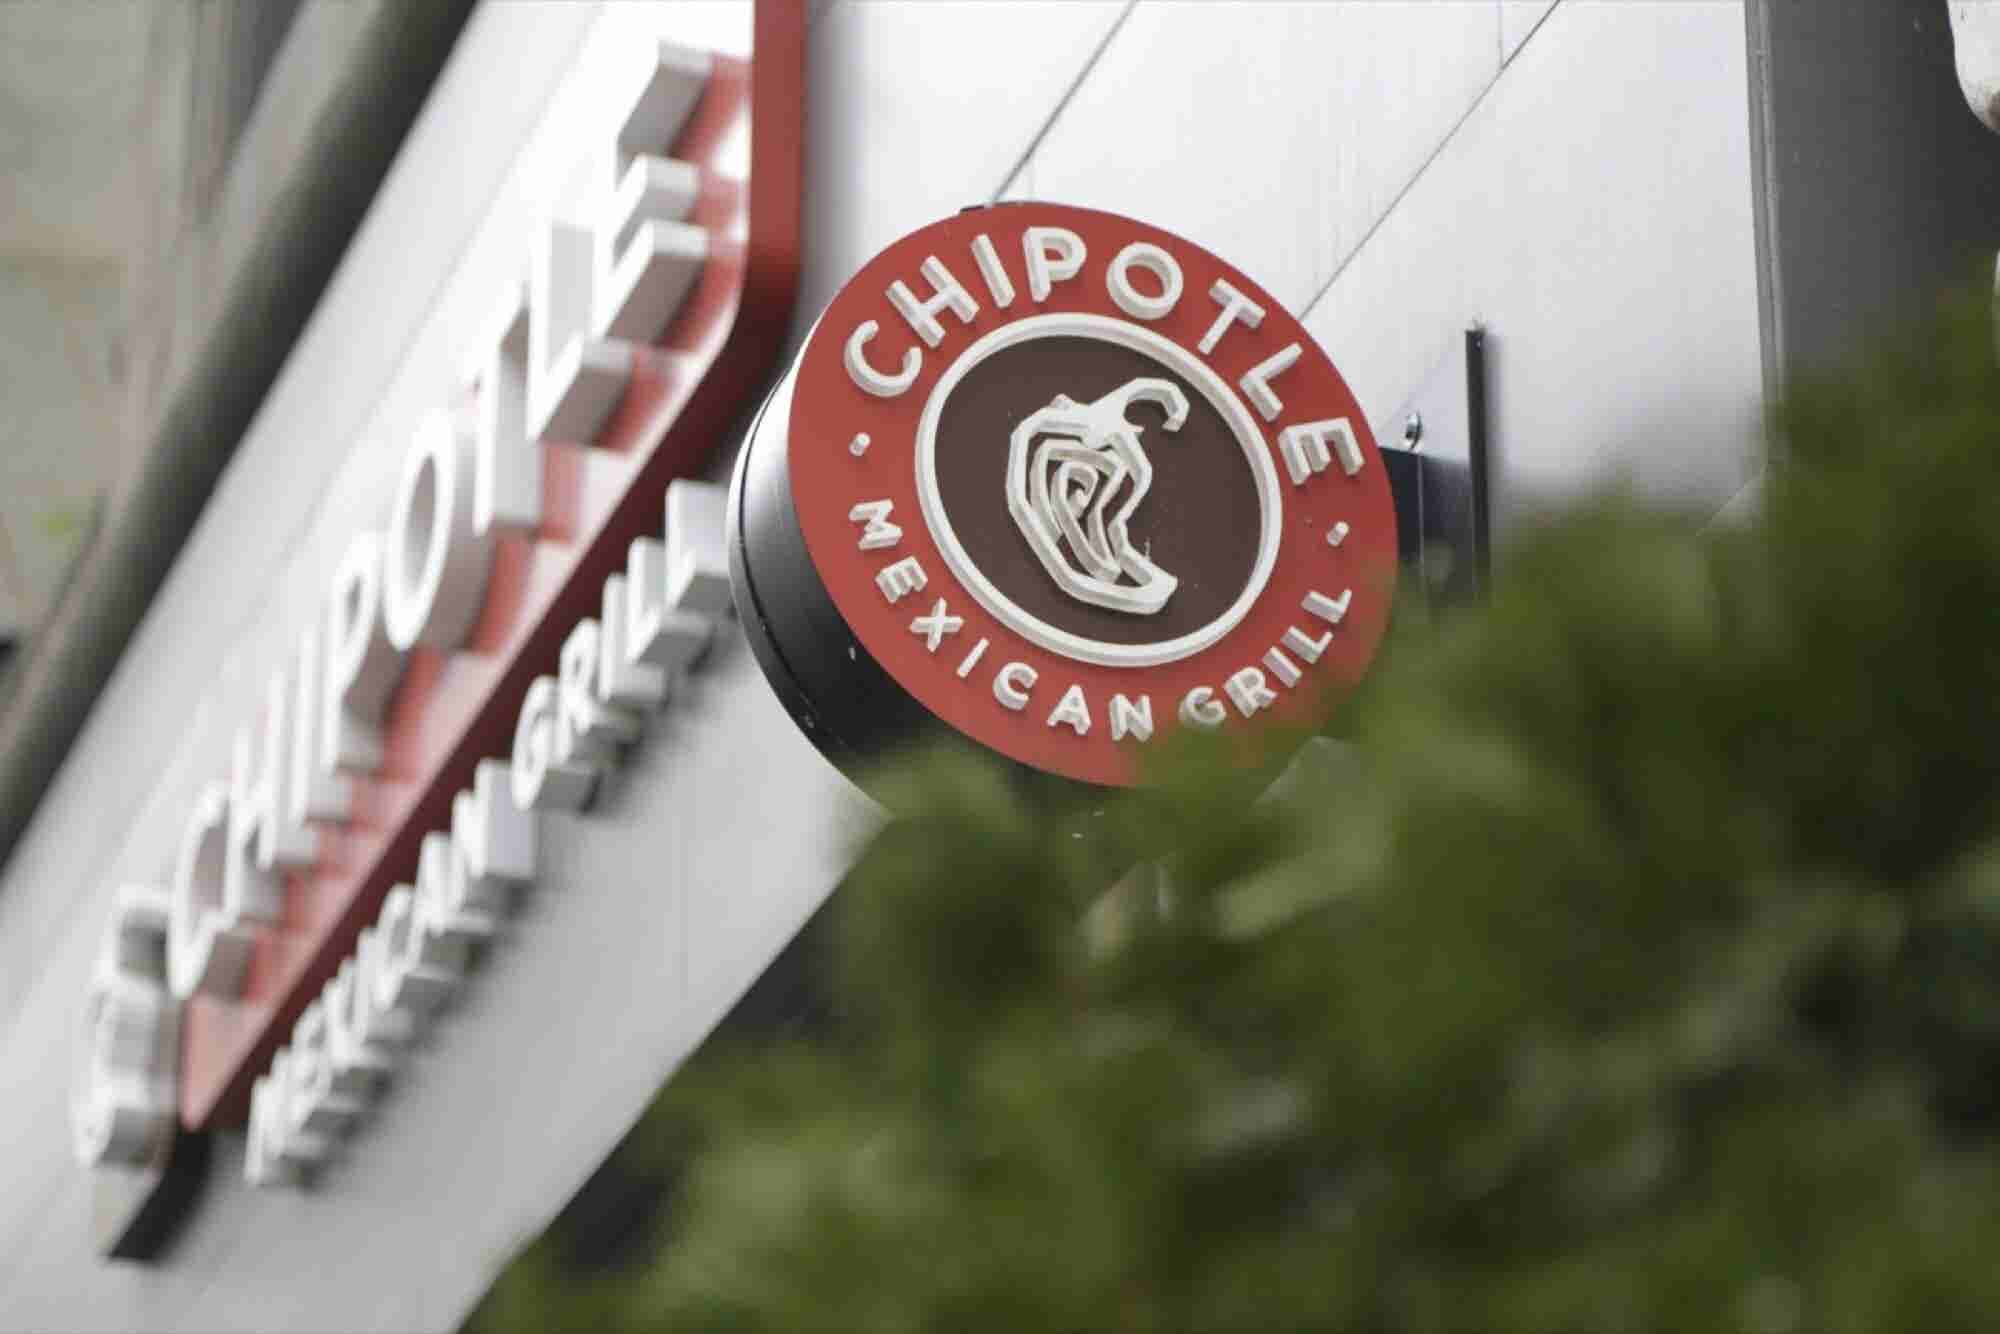 Chipotle Shuts Down Stores in Seattle and Portland After E. Coli Outbreak